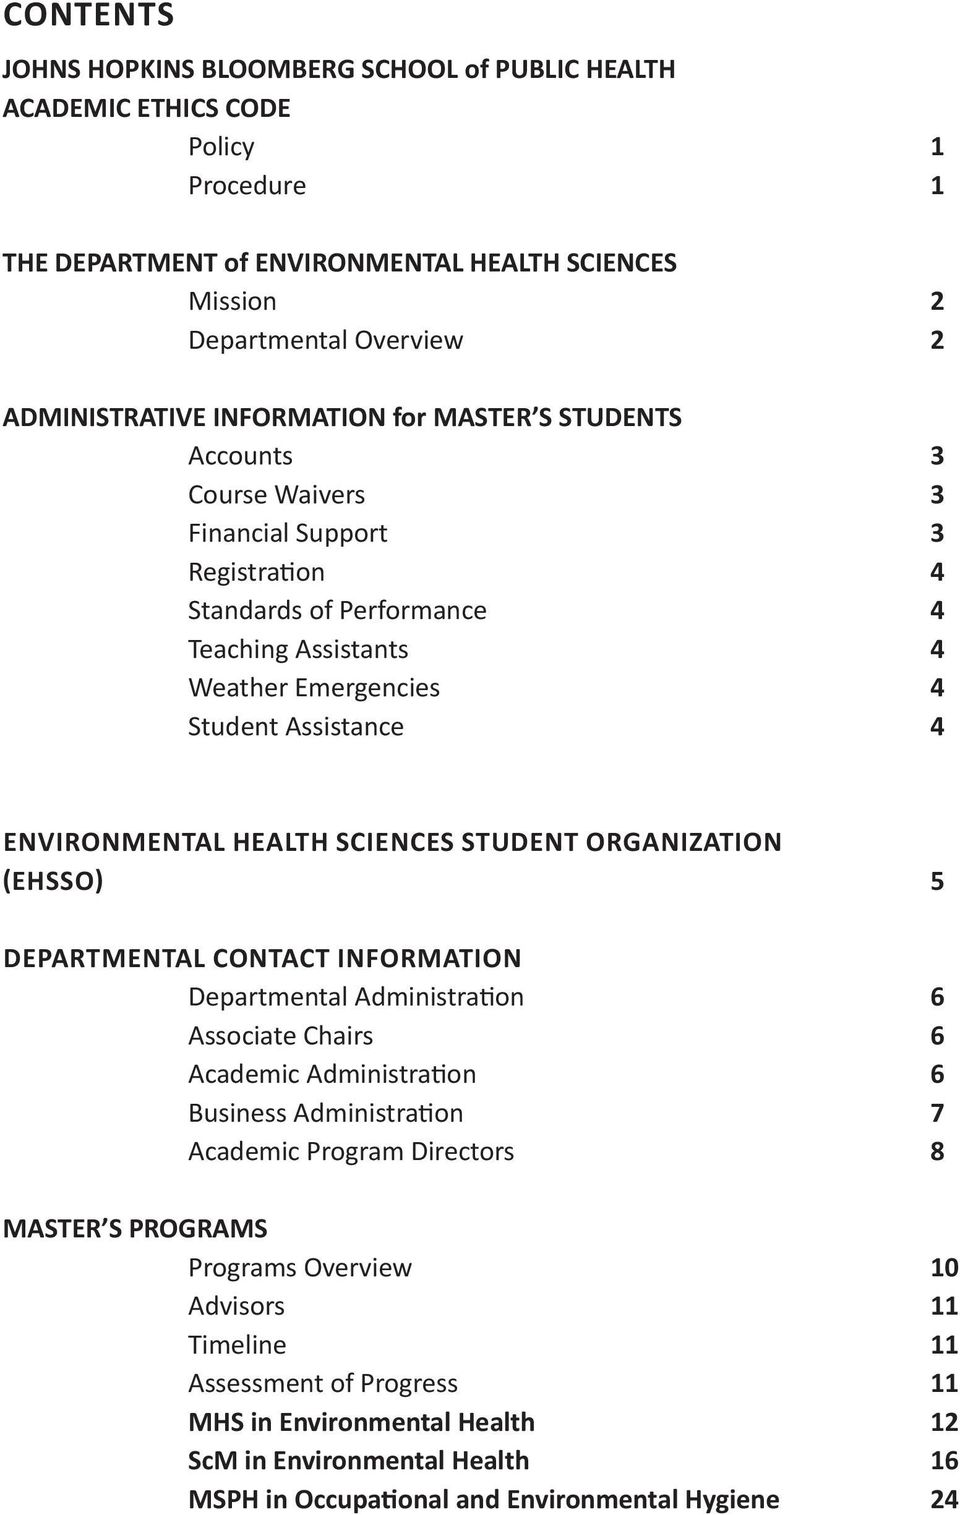 ENVIRONMENTAL HEALTH SCIENCES STUDENT ORGANIZATION (EHSSO) 5 DEPARTMENTAL CONTACT INFORMATION Departmental Administration 6 Associate Chairs 6 Academic Administration 6 Business Administration 7